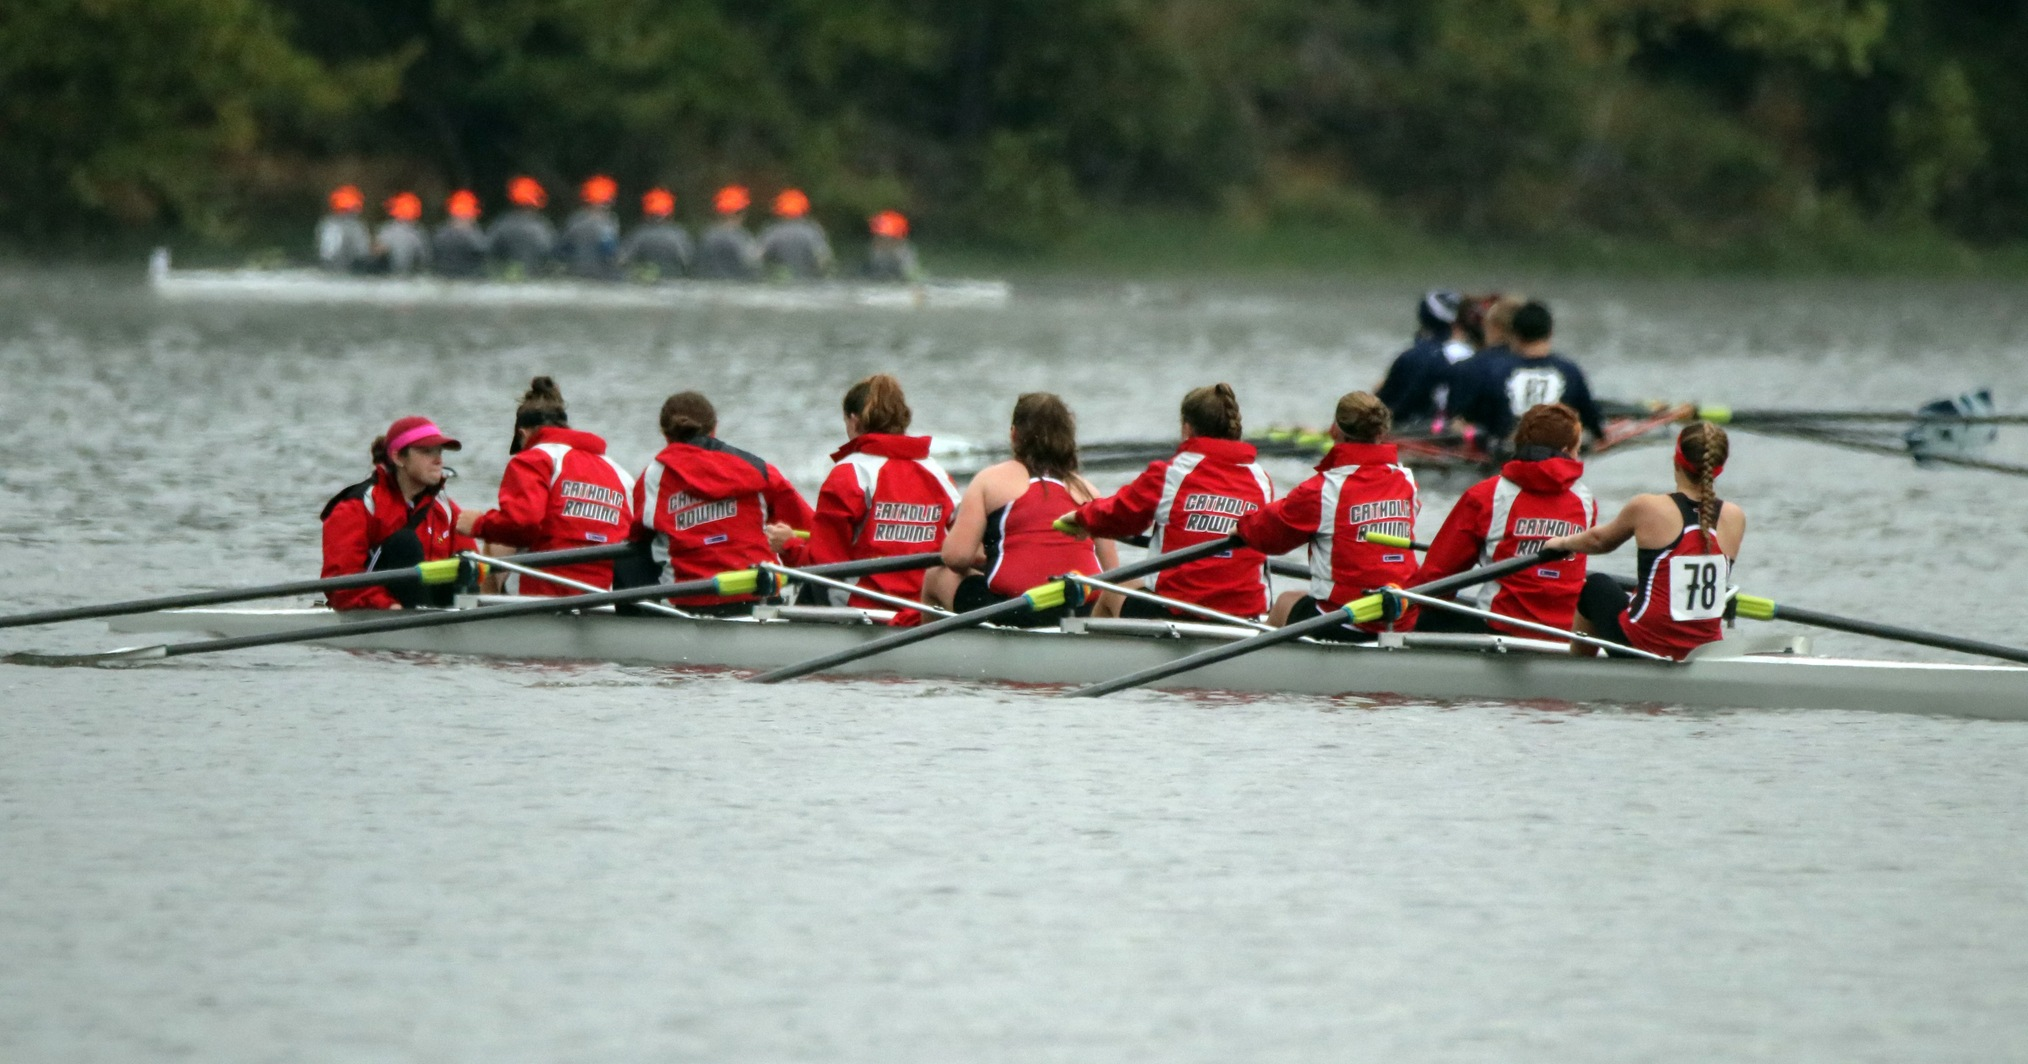 Cardinals Pick Up Win in First-Ever Race at Occoquan Chase